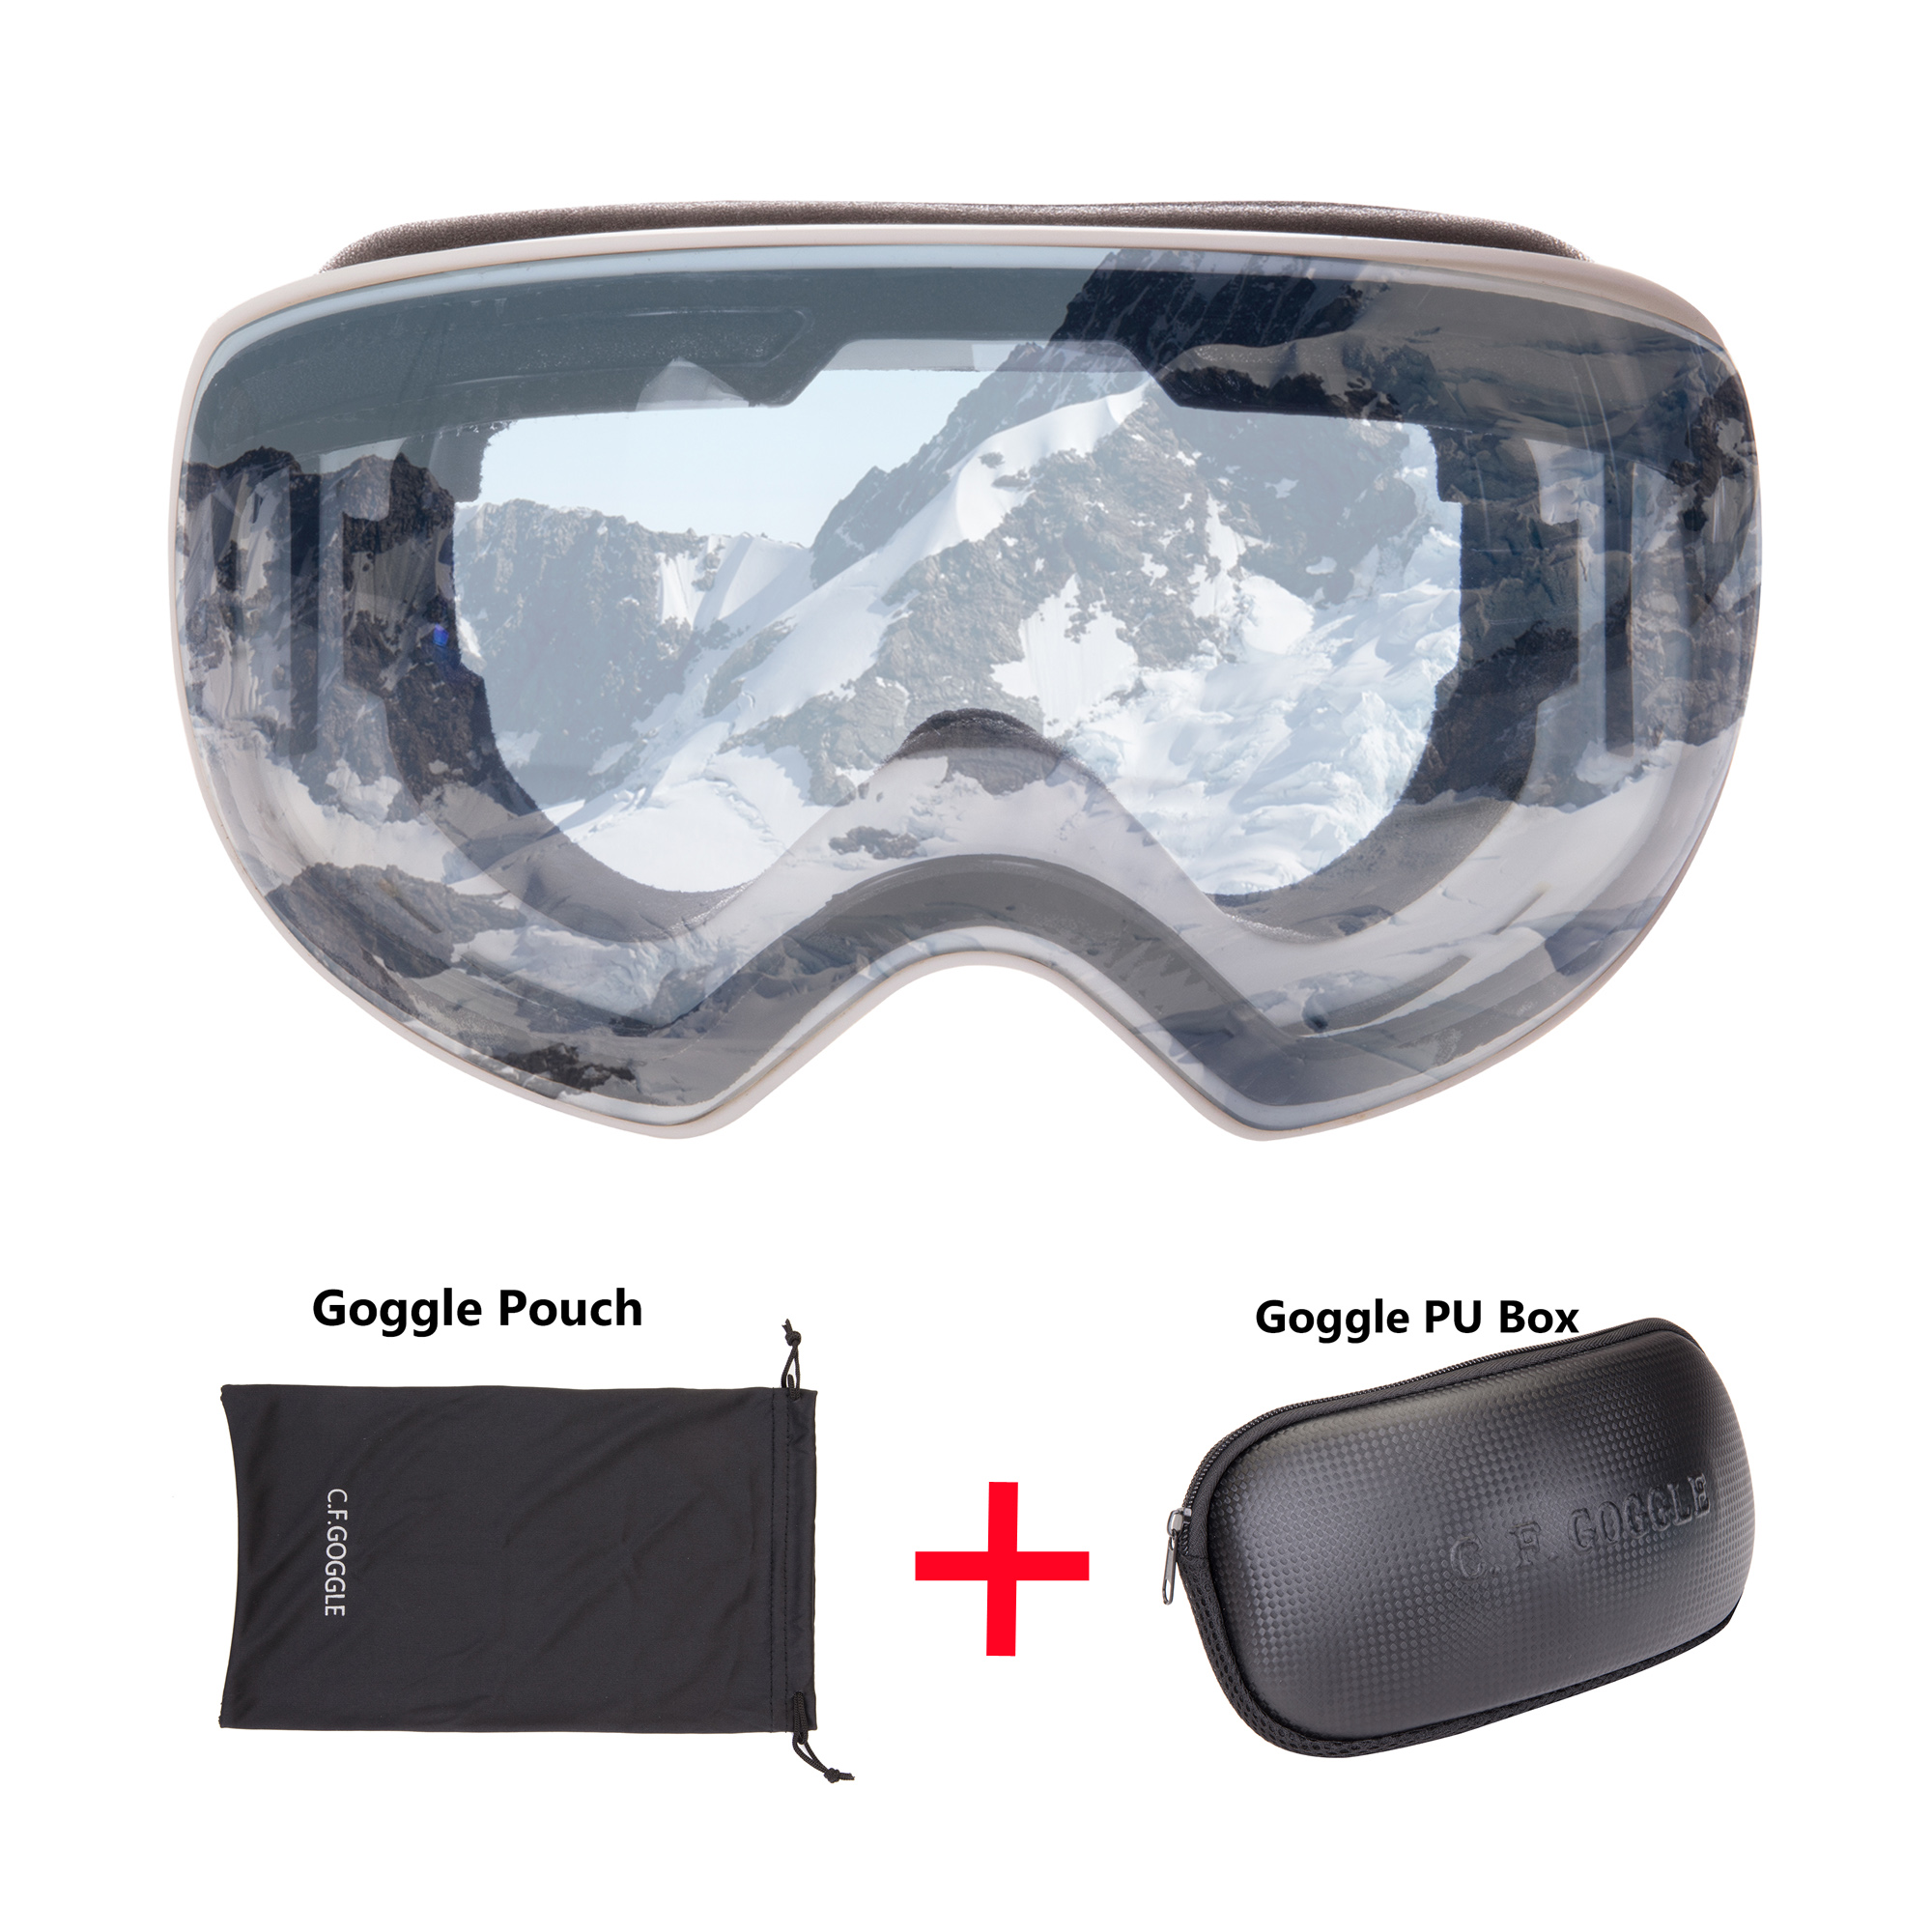 C.F.GOGGLE Skis, Snowboards & Accessories Goggles, for Skiing, Snowboarding, Motorcycling and Winter Sports - Anti-Fog and Helmet Compatible - OTG UV400 Protection - Fits Men, Women and Youth